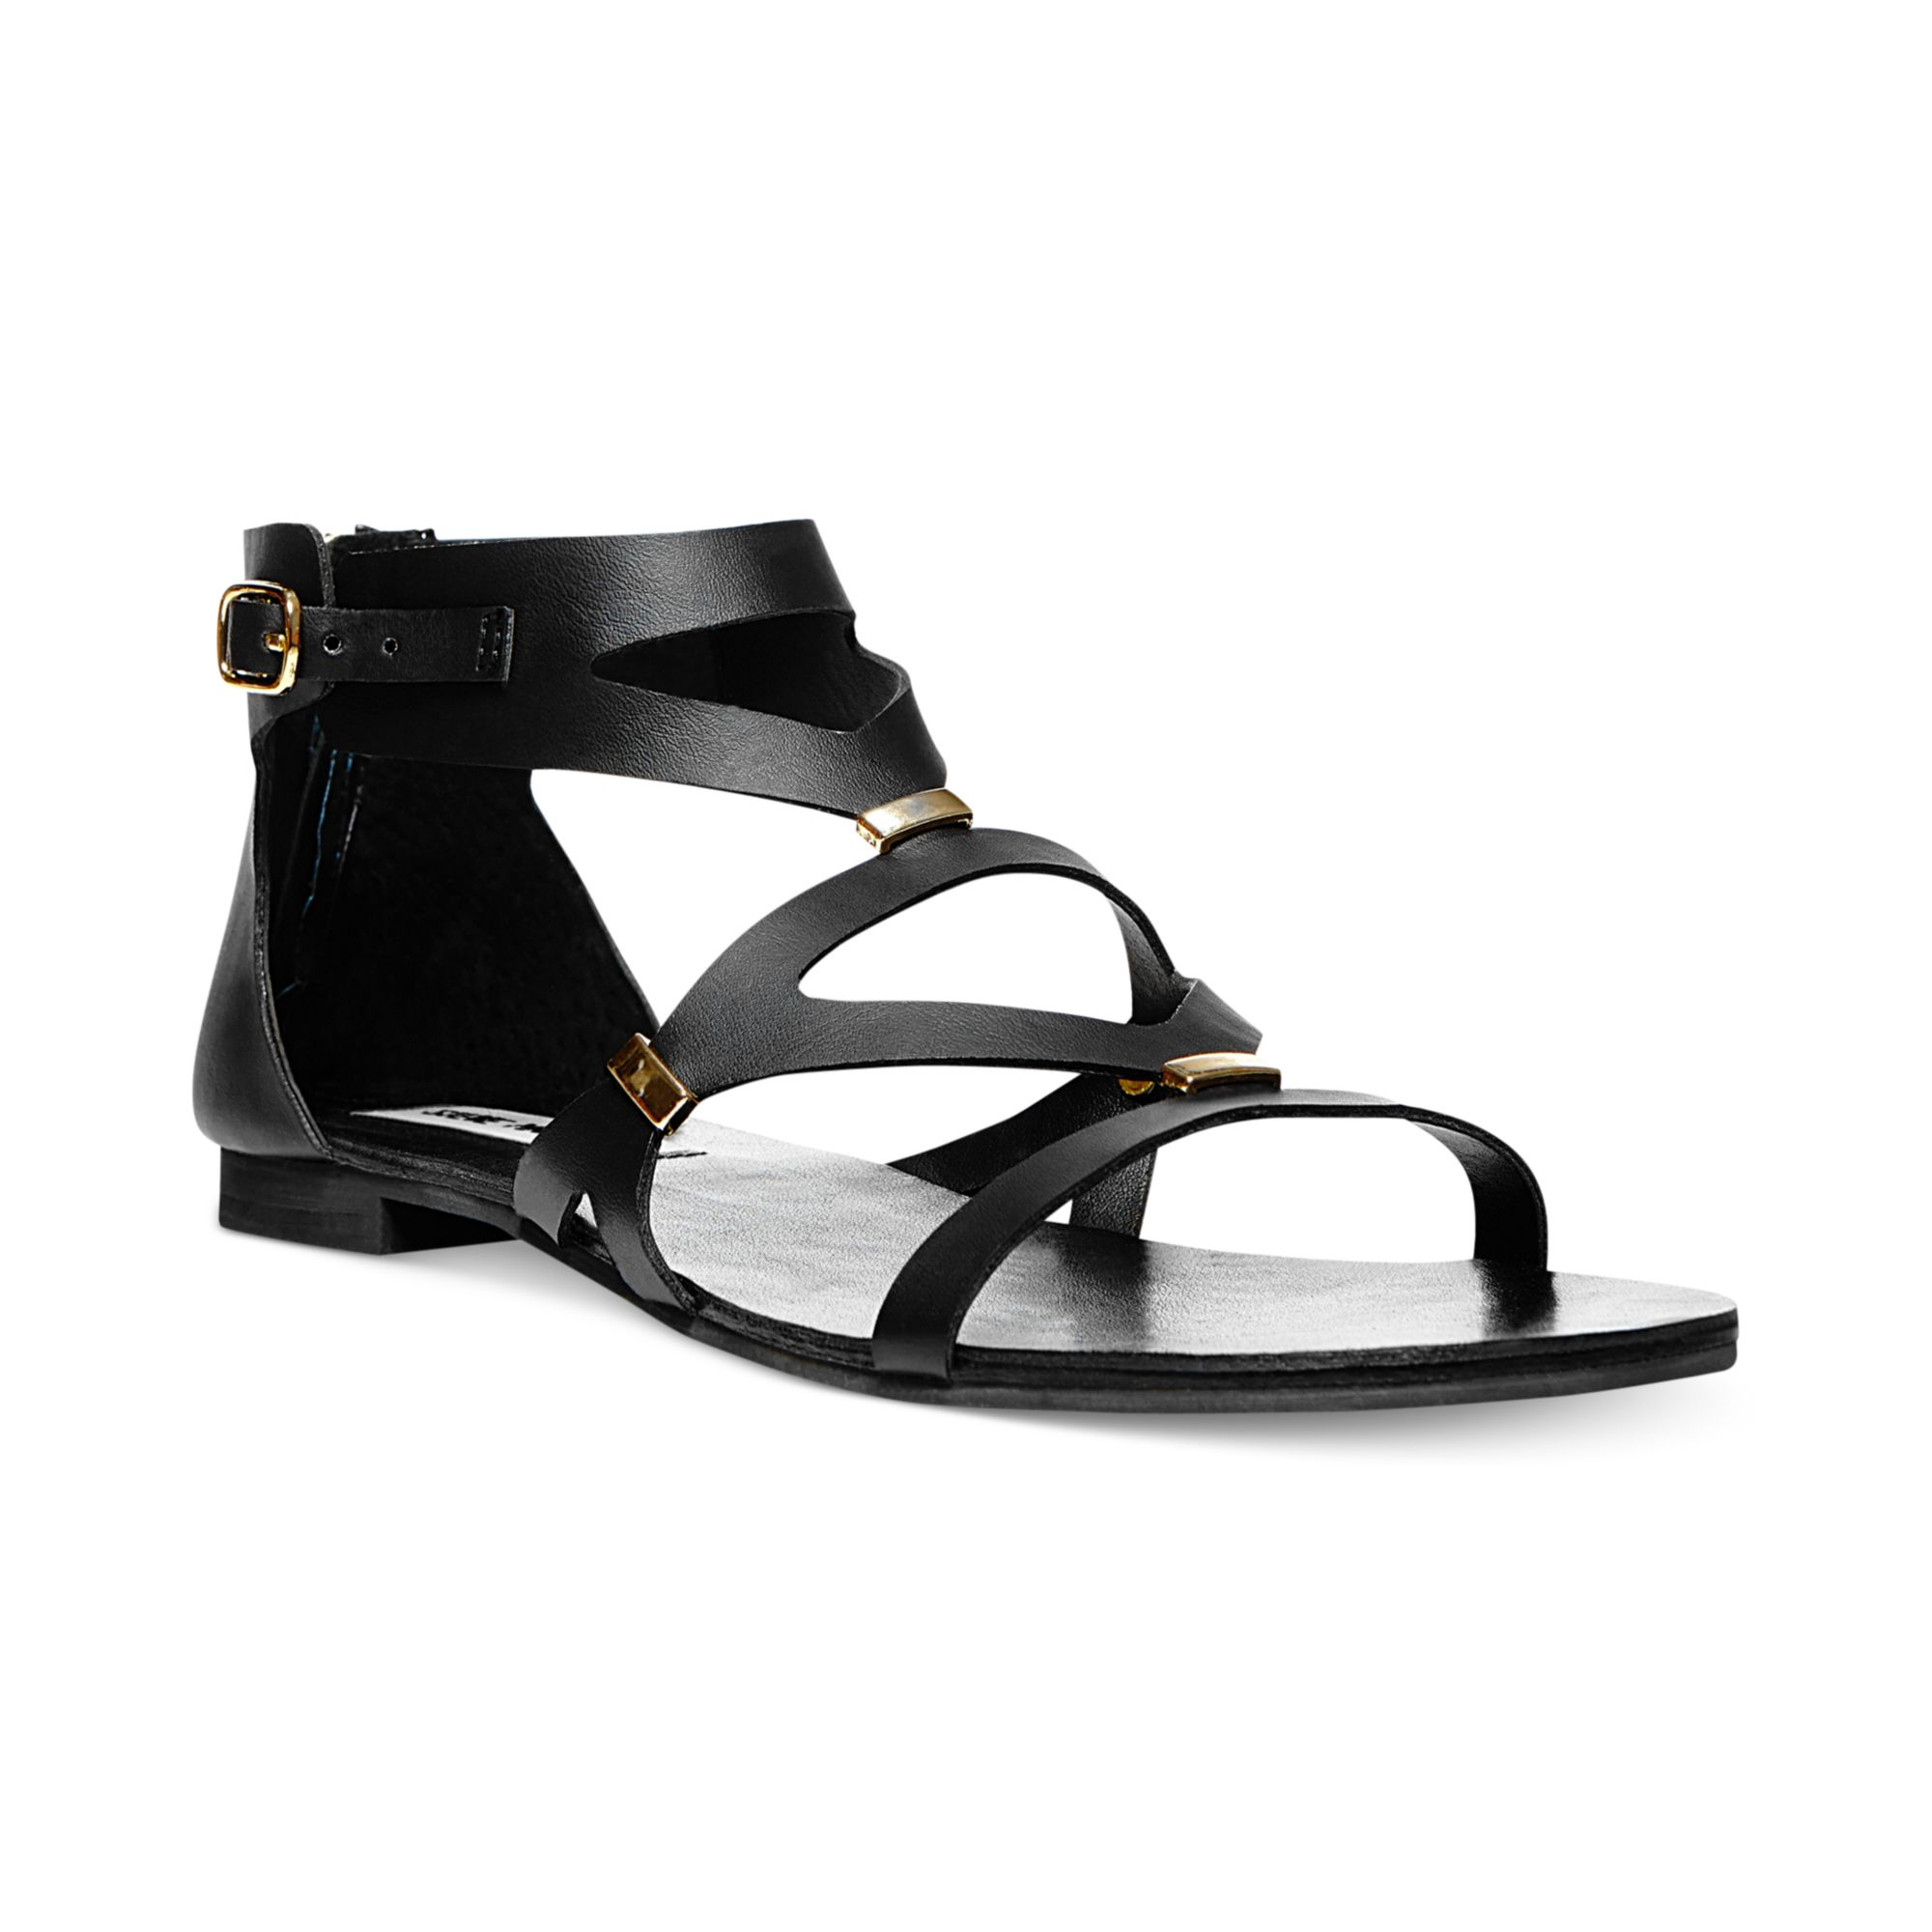 Steve Womens Flat In Sandals Madden Black Lyst Commma rdCexBo